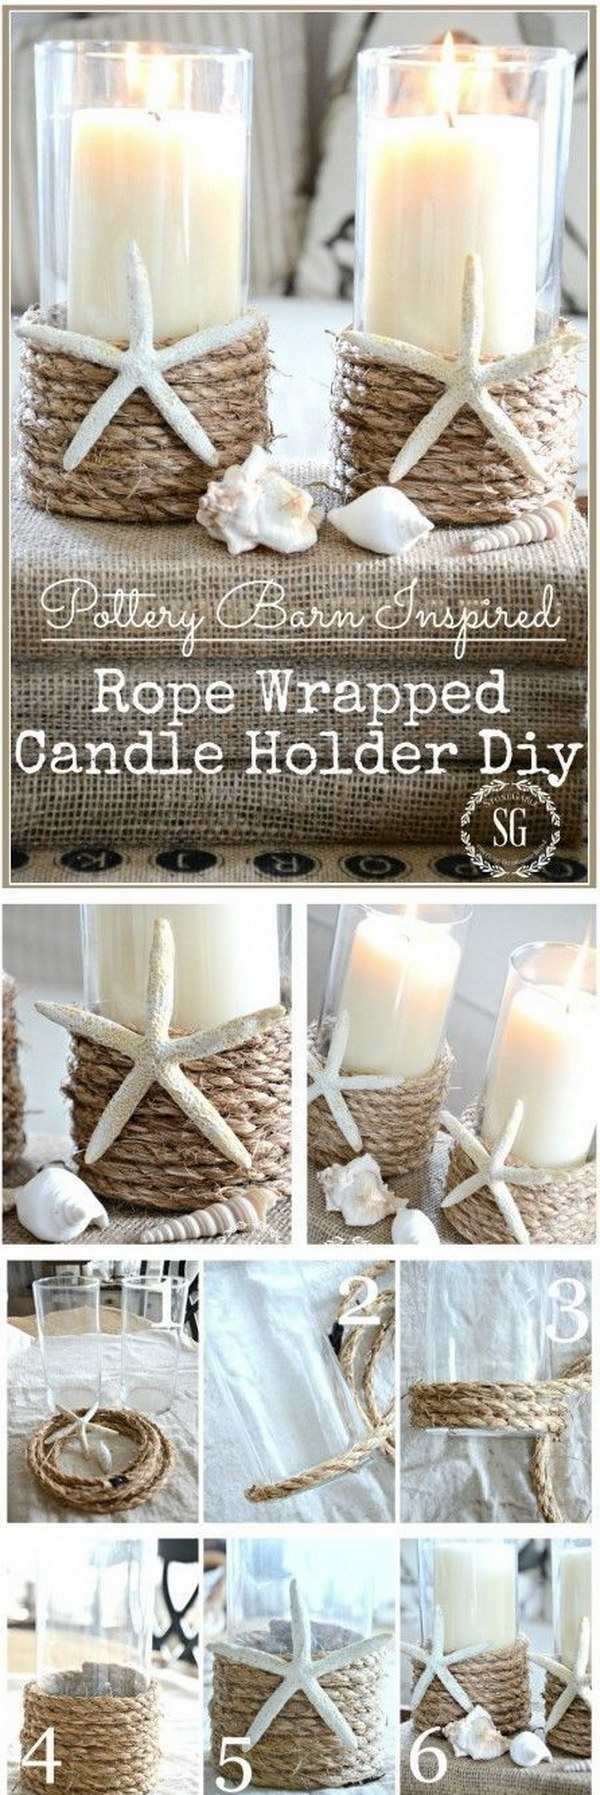 8 DIY Rope Wrapped Candle Holder